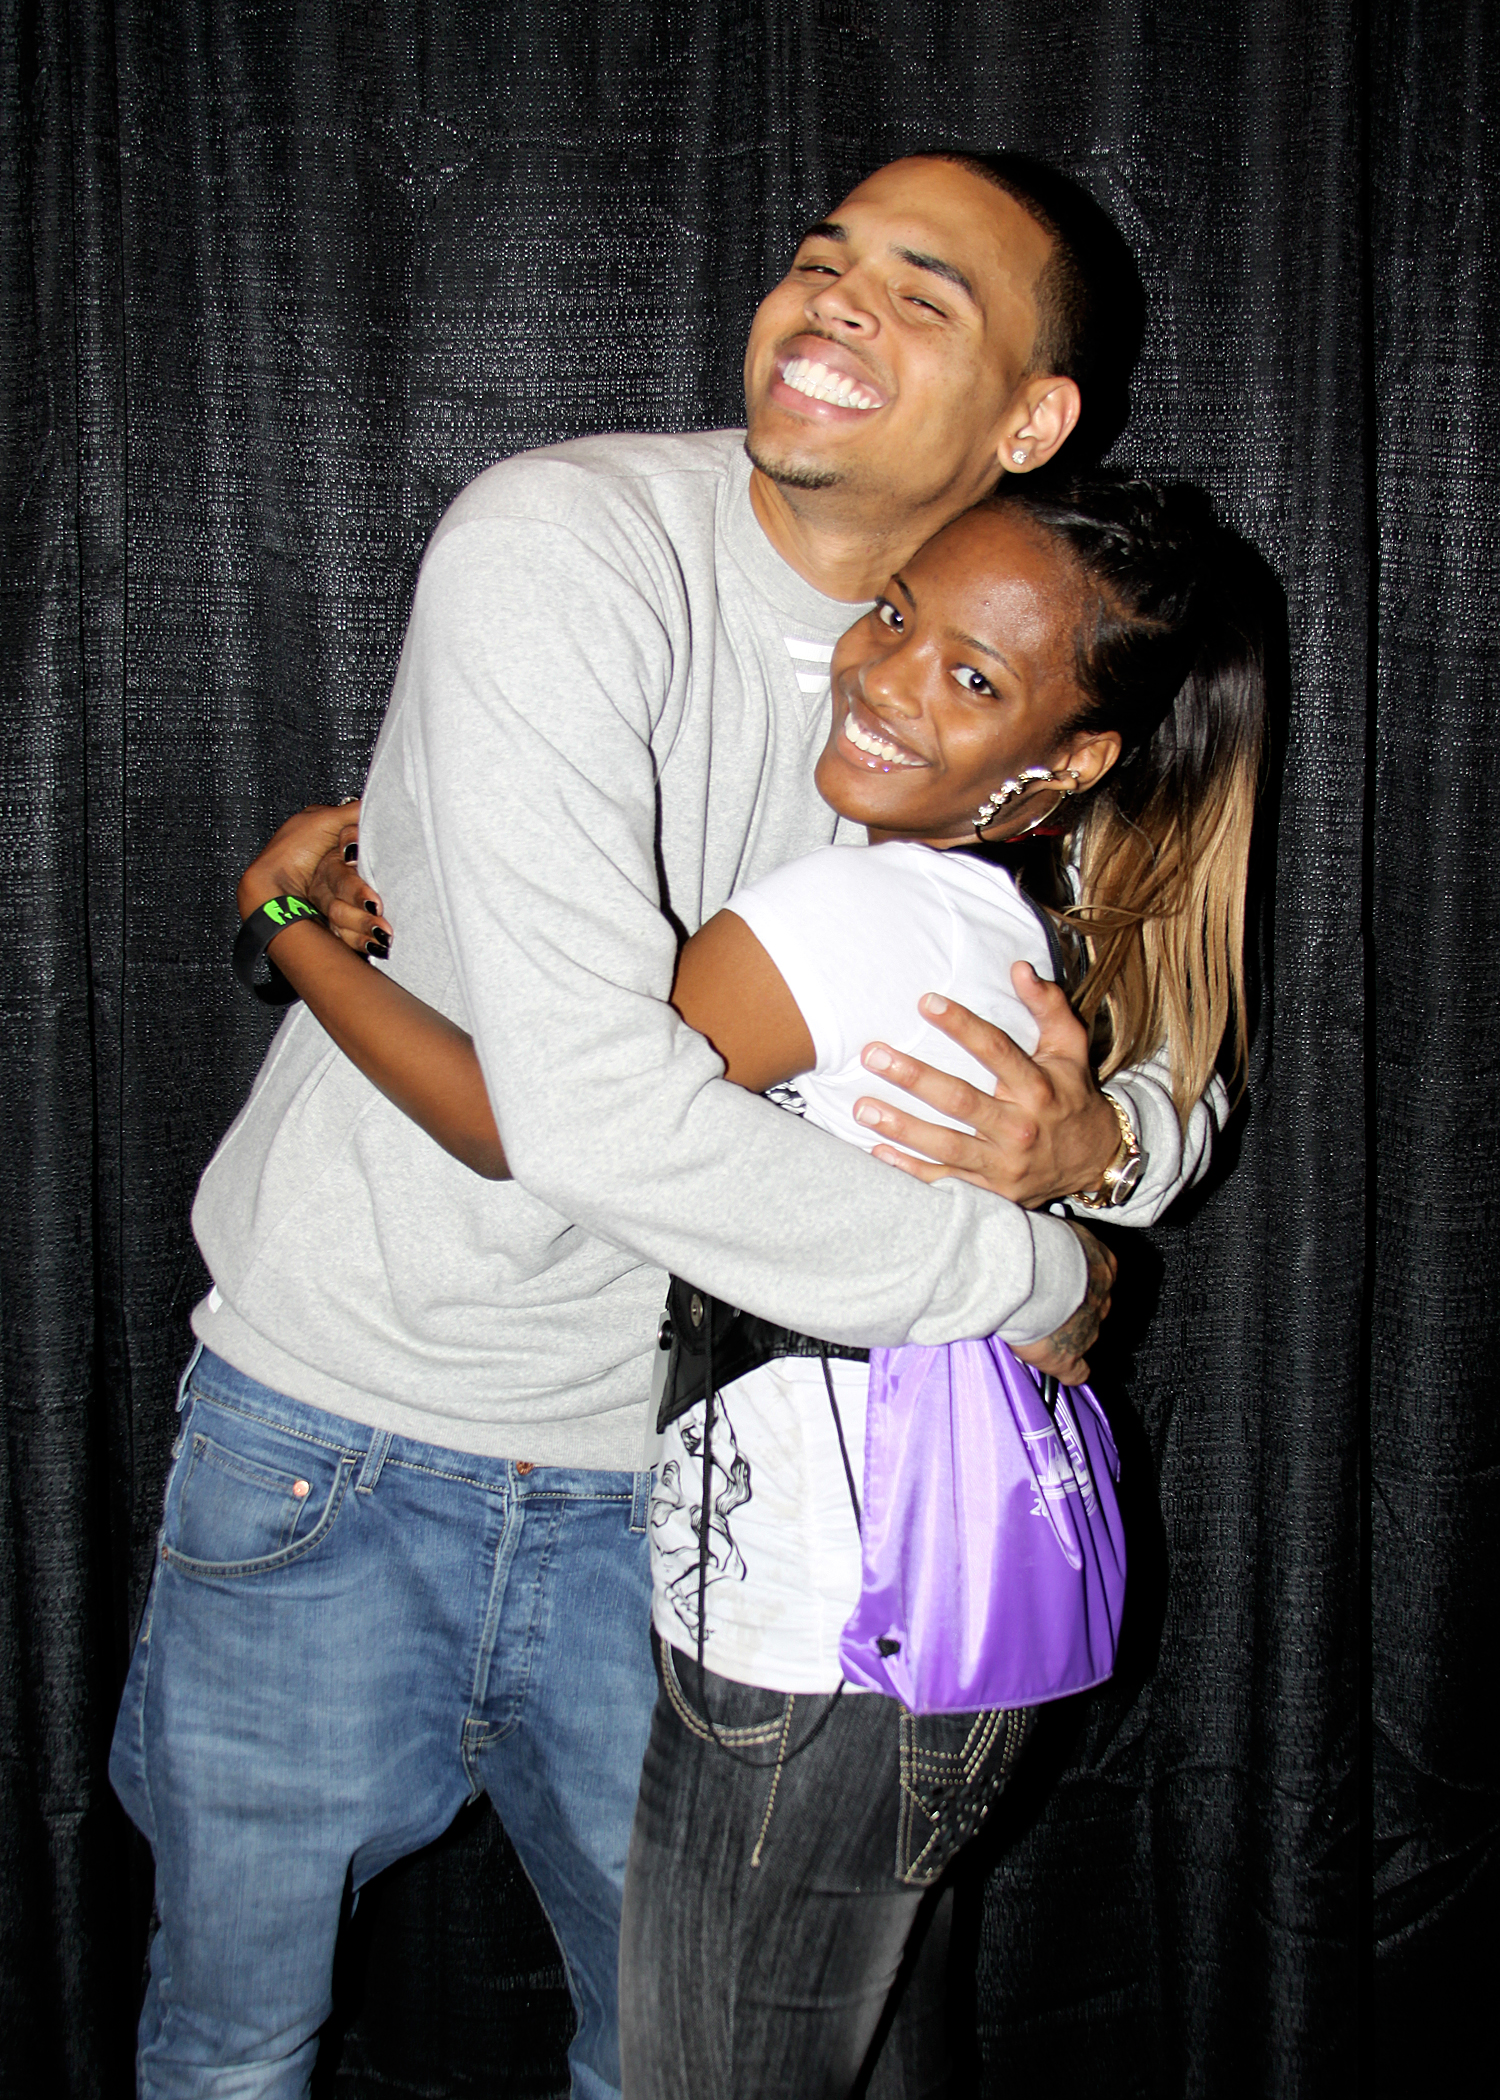 meet and greet chris brown detroit mi